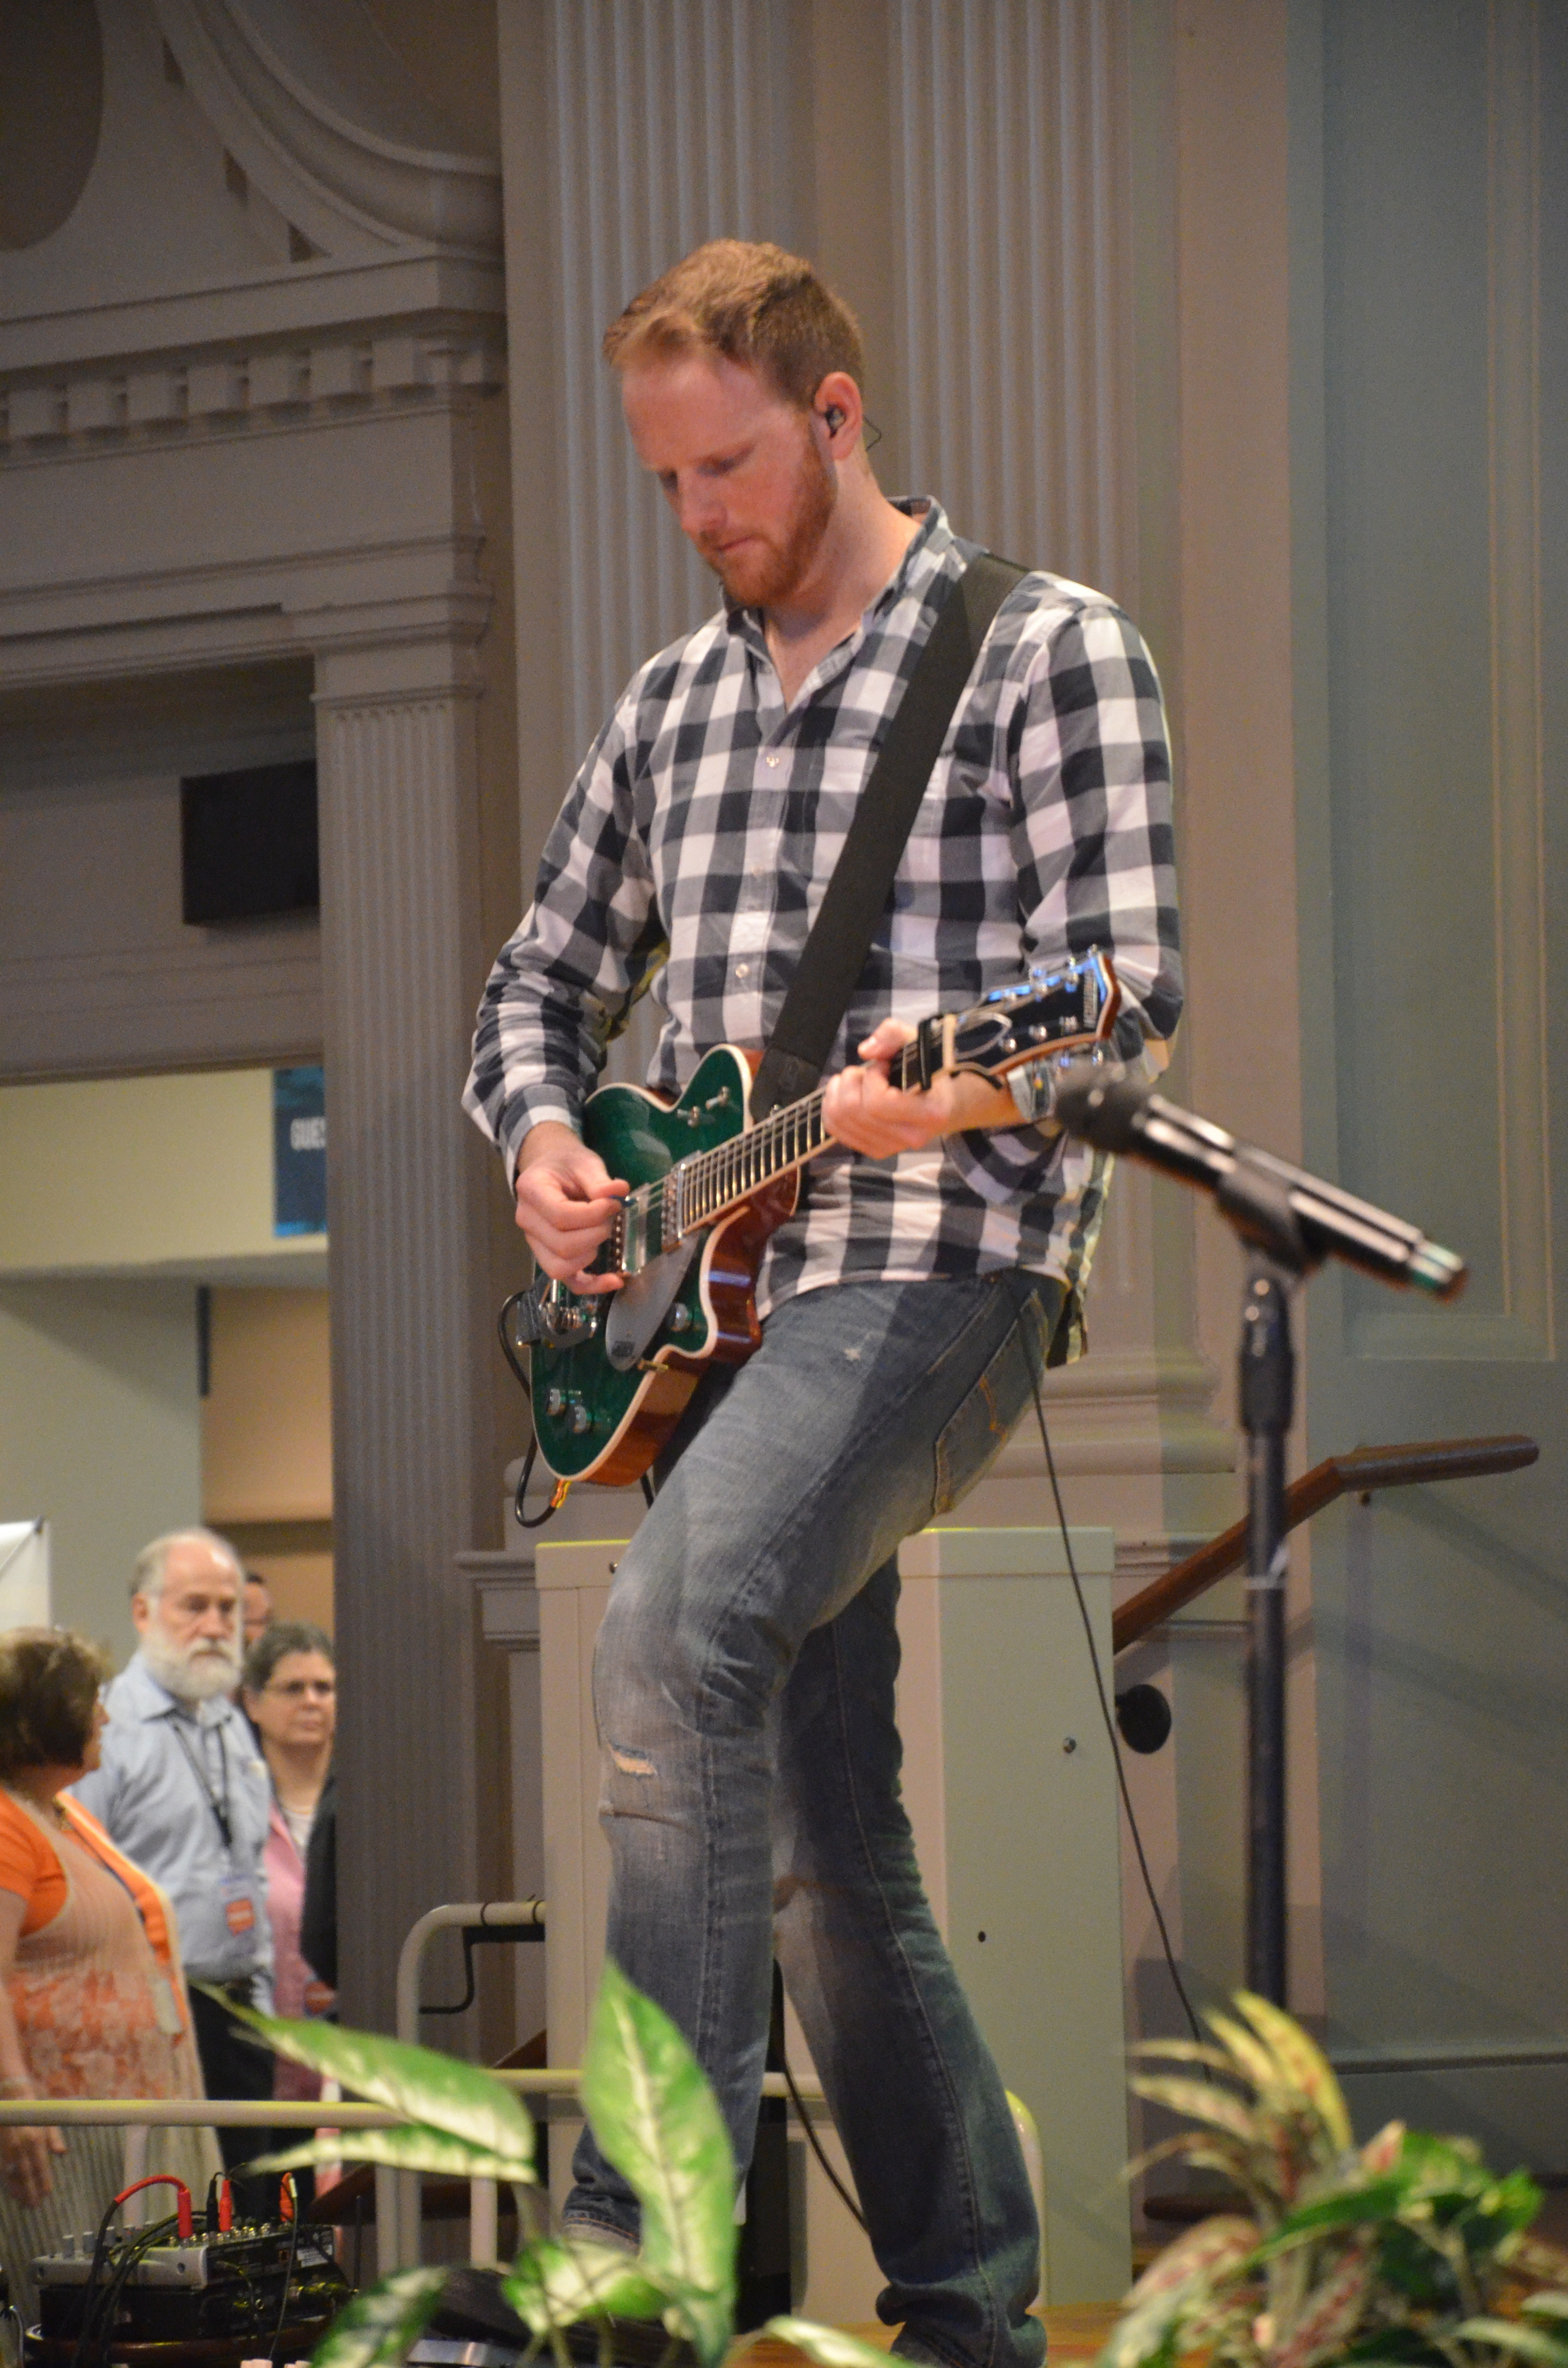 The Truth for a New Generation conference worship is led by Charles Billingsly and his band. One of the conference goals is to answer questions for those struggling with doubts.